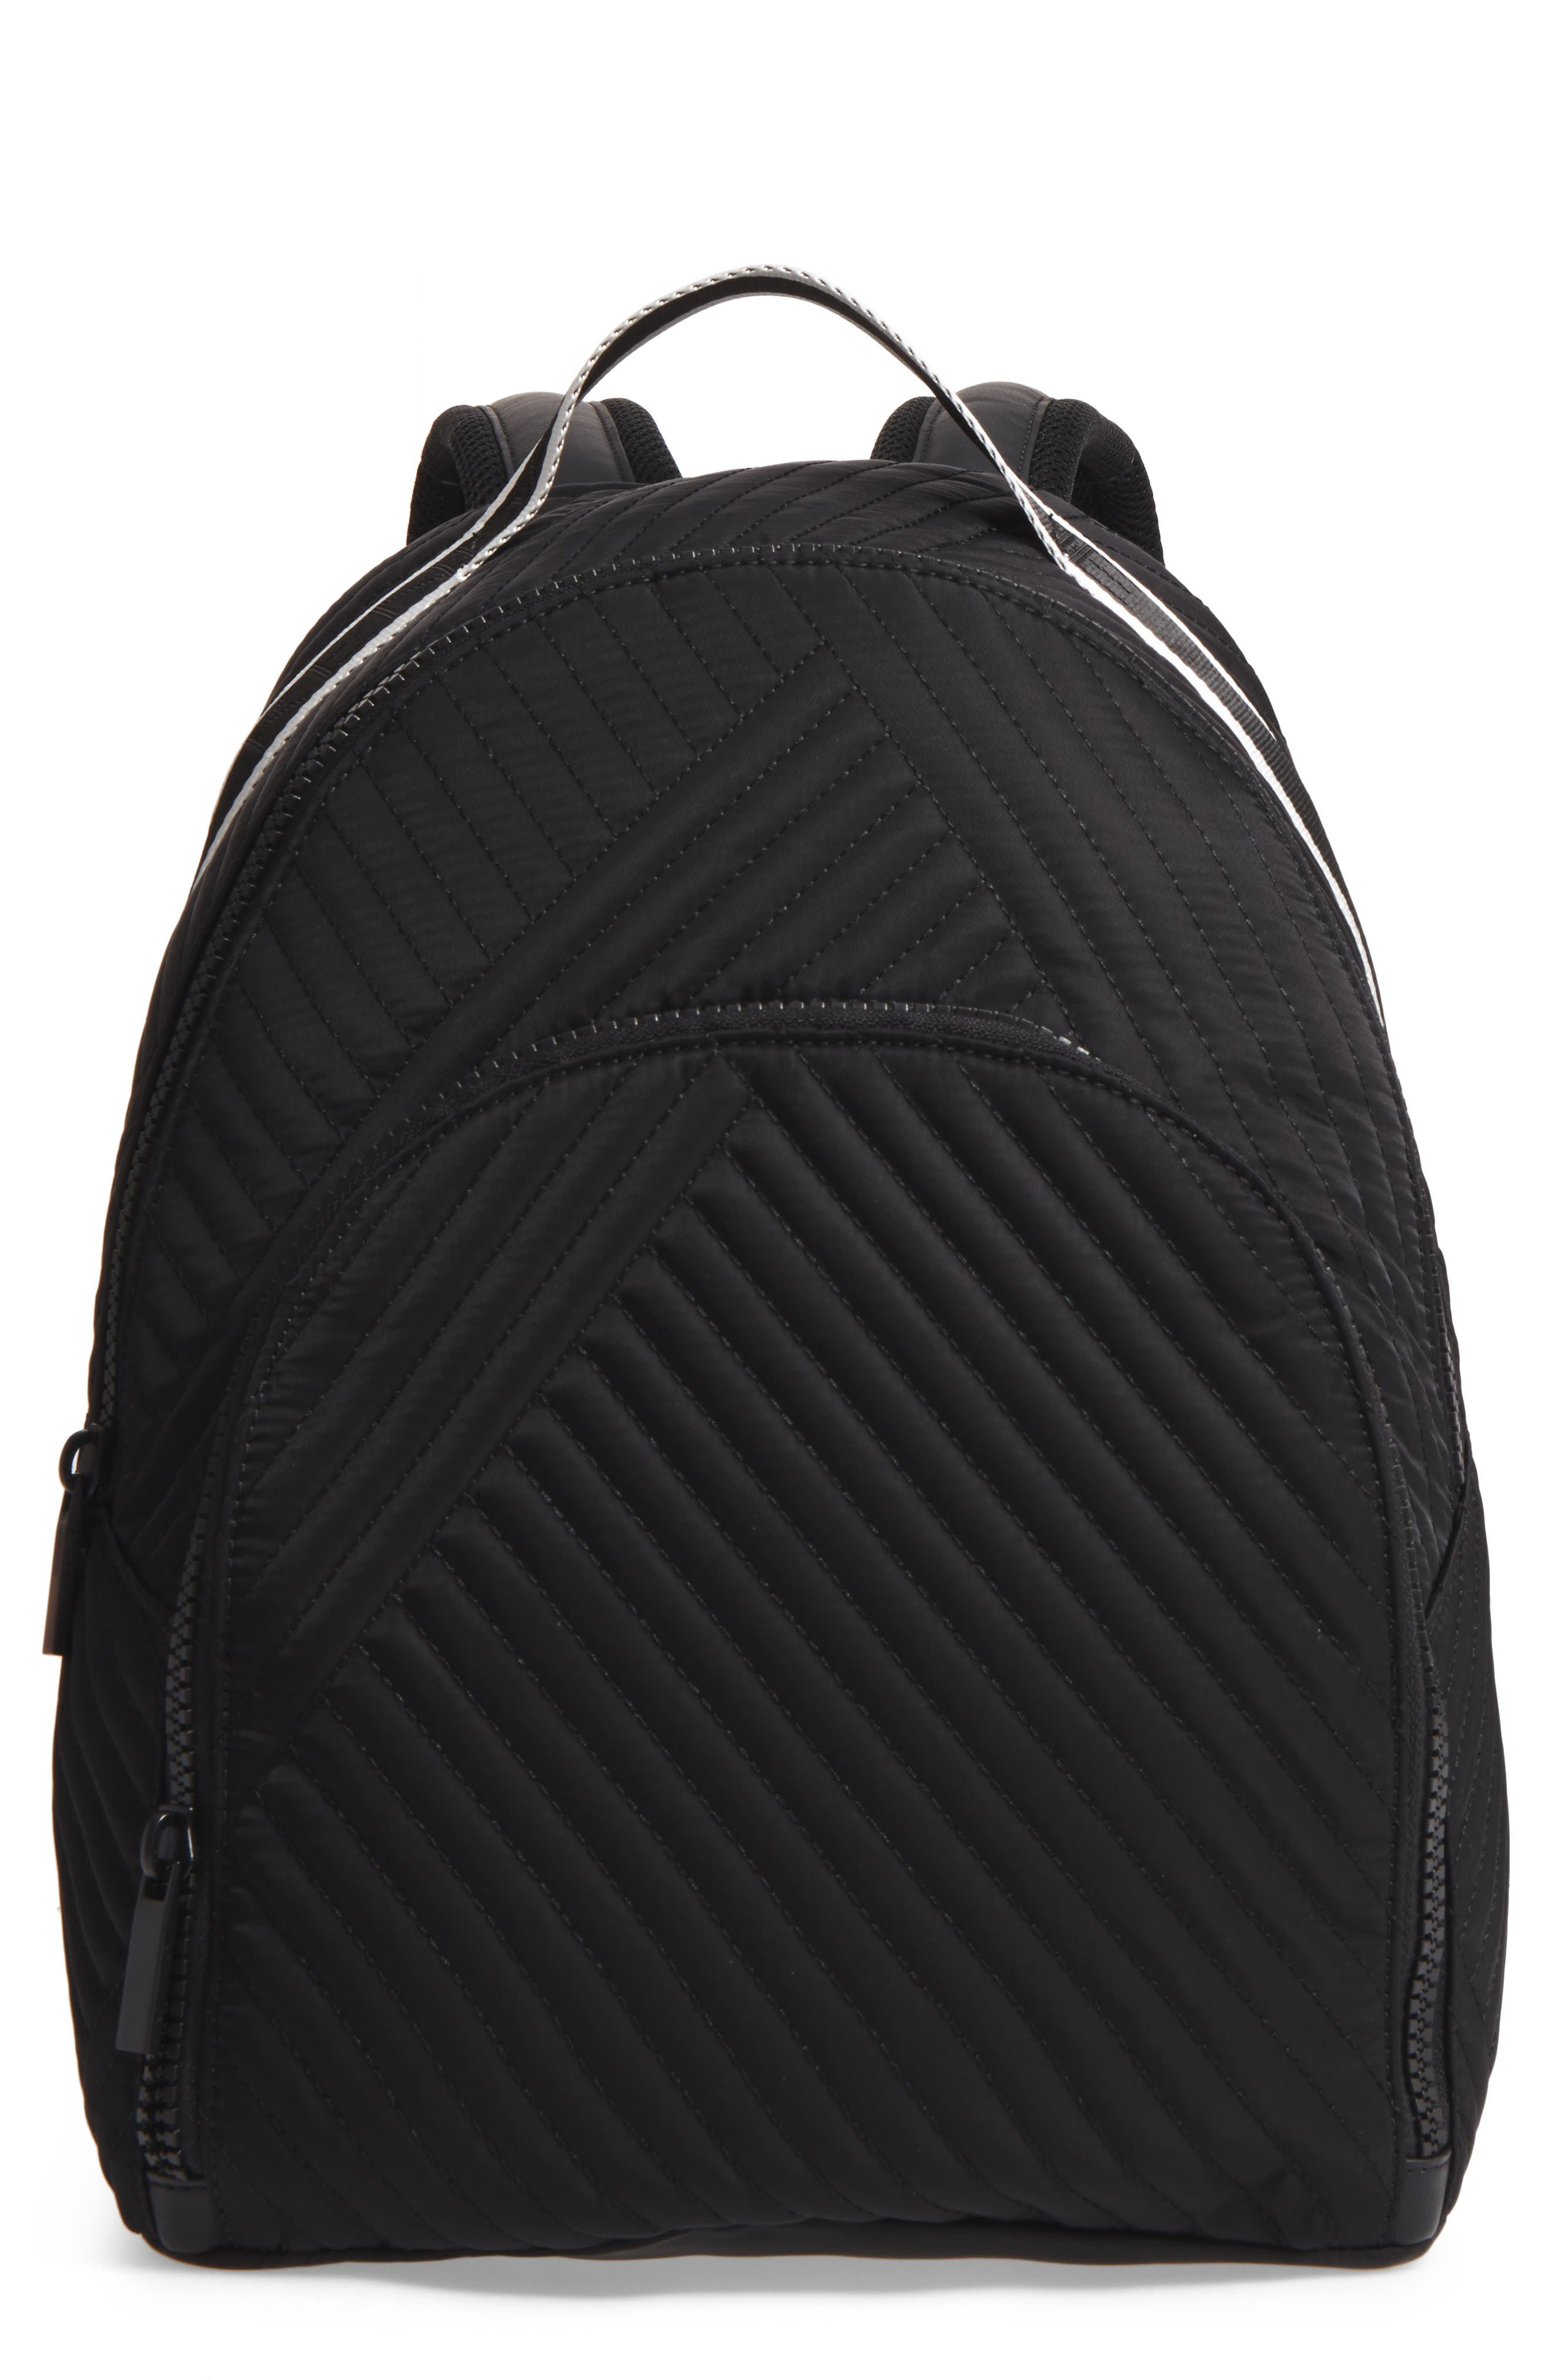 Jo Quilted Nylon Backpack,                             Main thumbnail 1, color,                             001